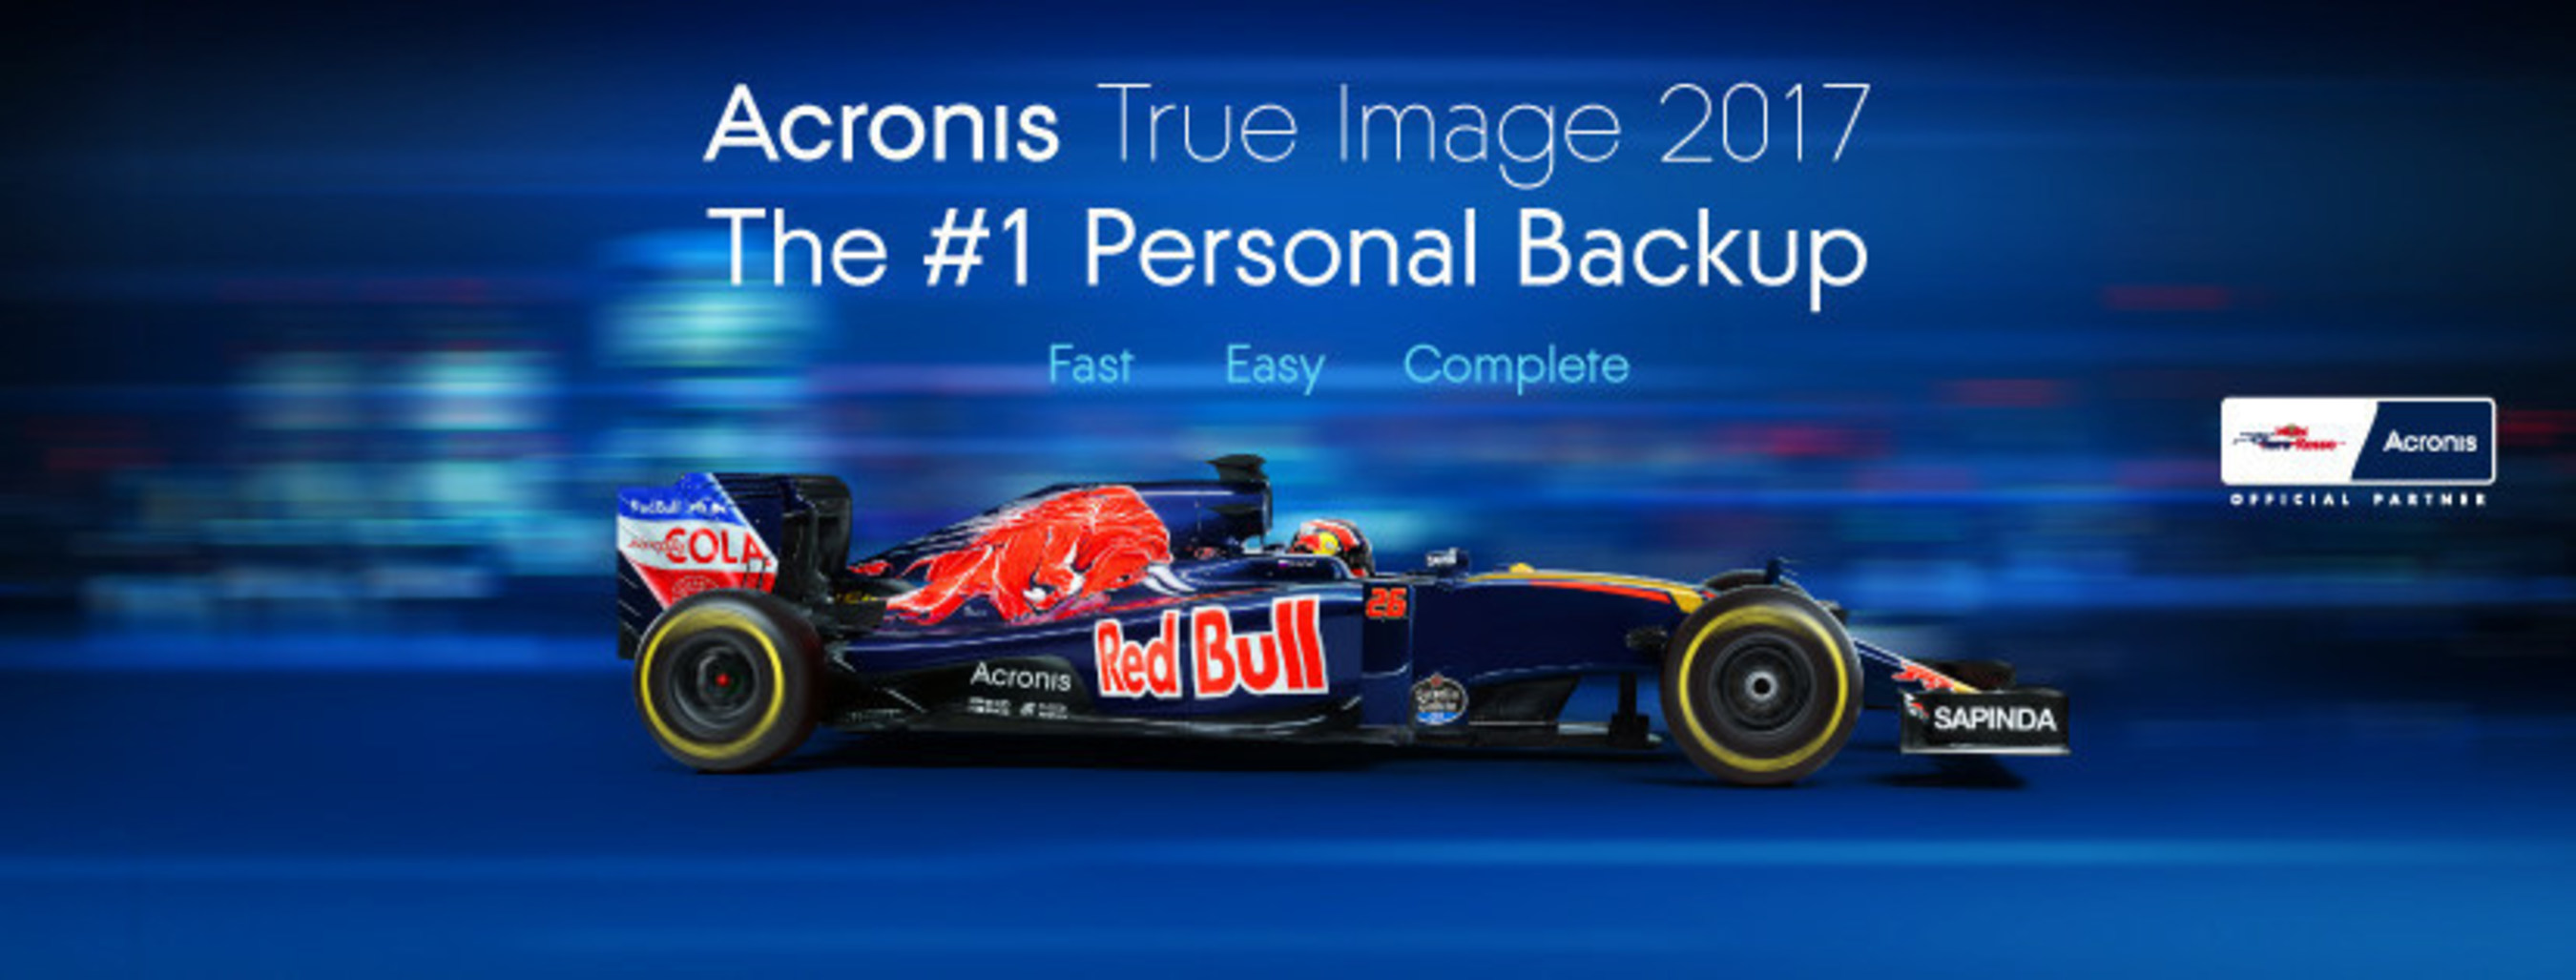 Acronis True Image 2017 Launches with Wireless Backup for Mobile Devices to Local Computers, Remote Backup Management, and Facebook Backup